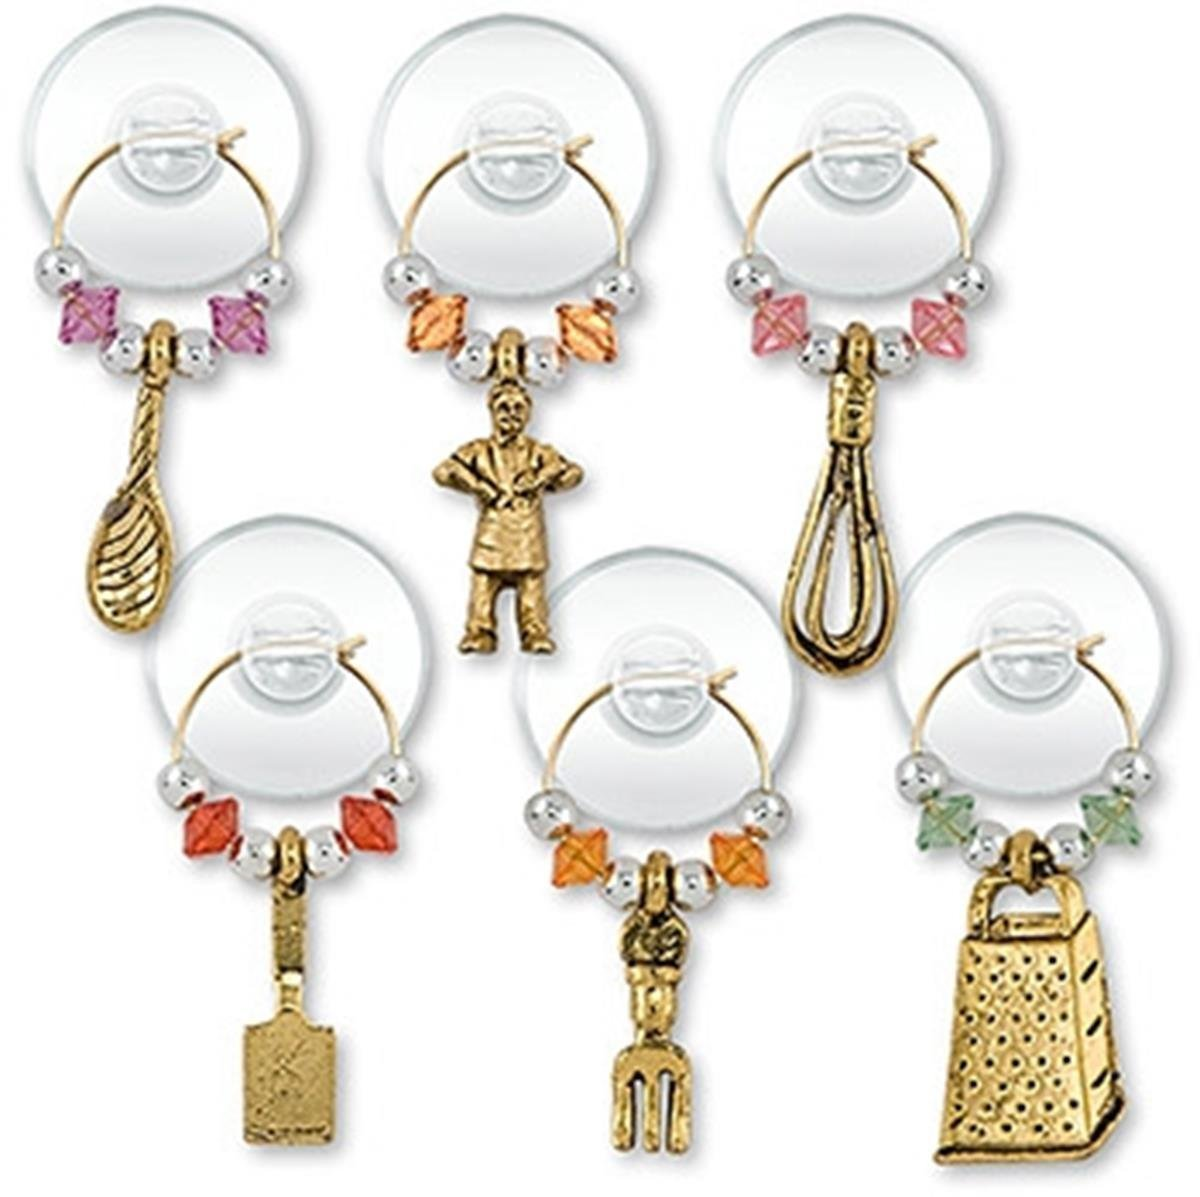 """Epic 83-067 Gold Colored """"Cooking Party Suction Cup"""" My Glass Charms (Set of 6)"""